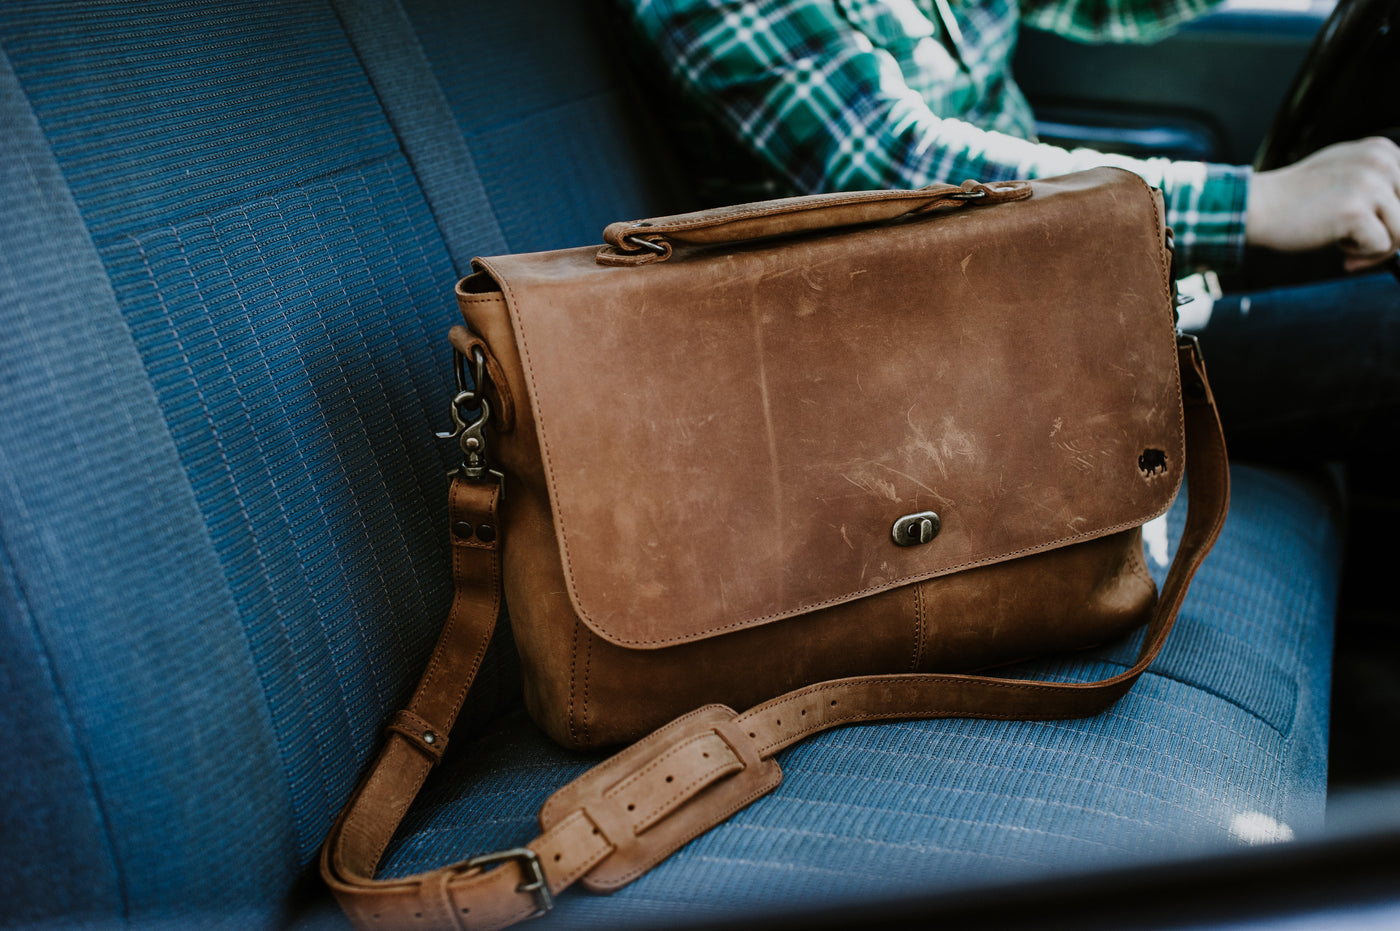 Buffalo Jackson Rugged Leather Goods Clothes For Men Tas Kamera Wotancraft Messenger Duffles Briefcases More